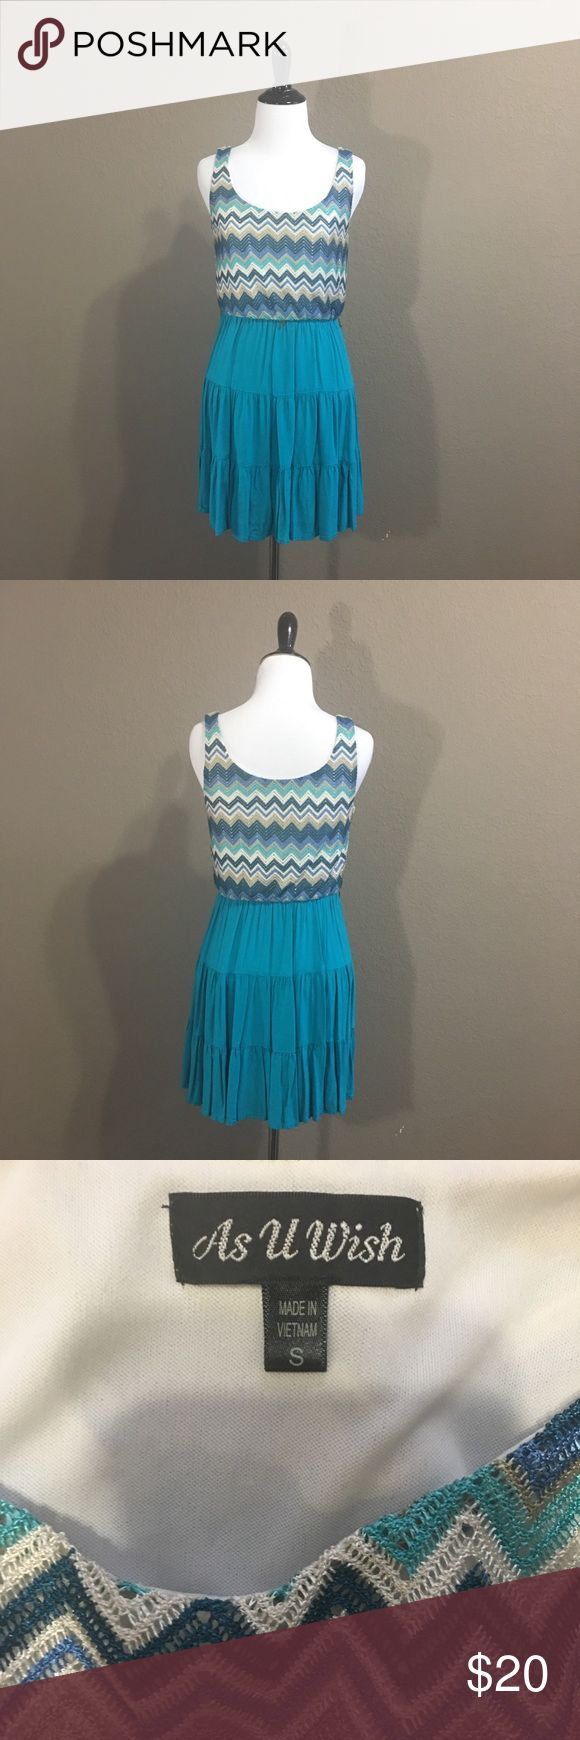 """Blue Chevron Dress No longer have the belt that goes with this dress. It's about 31"""" in length. As U Wish Dresses Mini"""